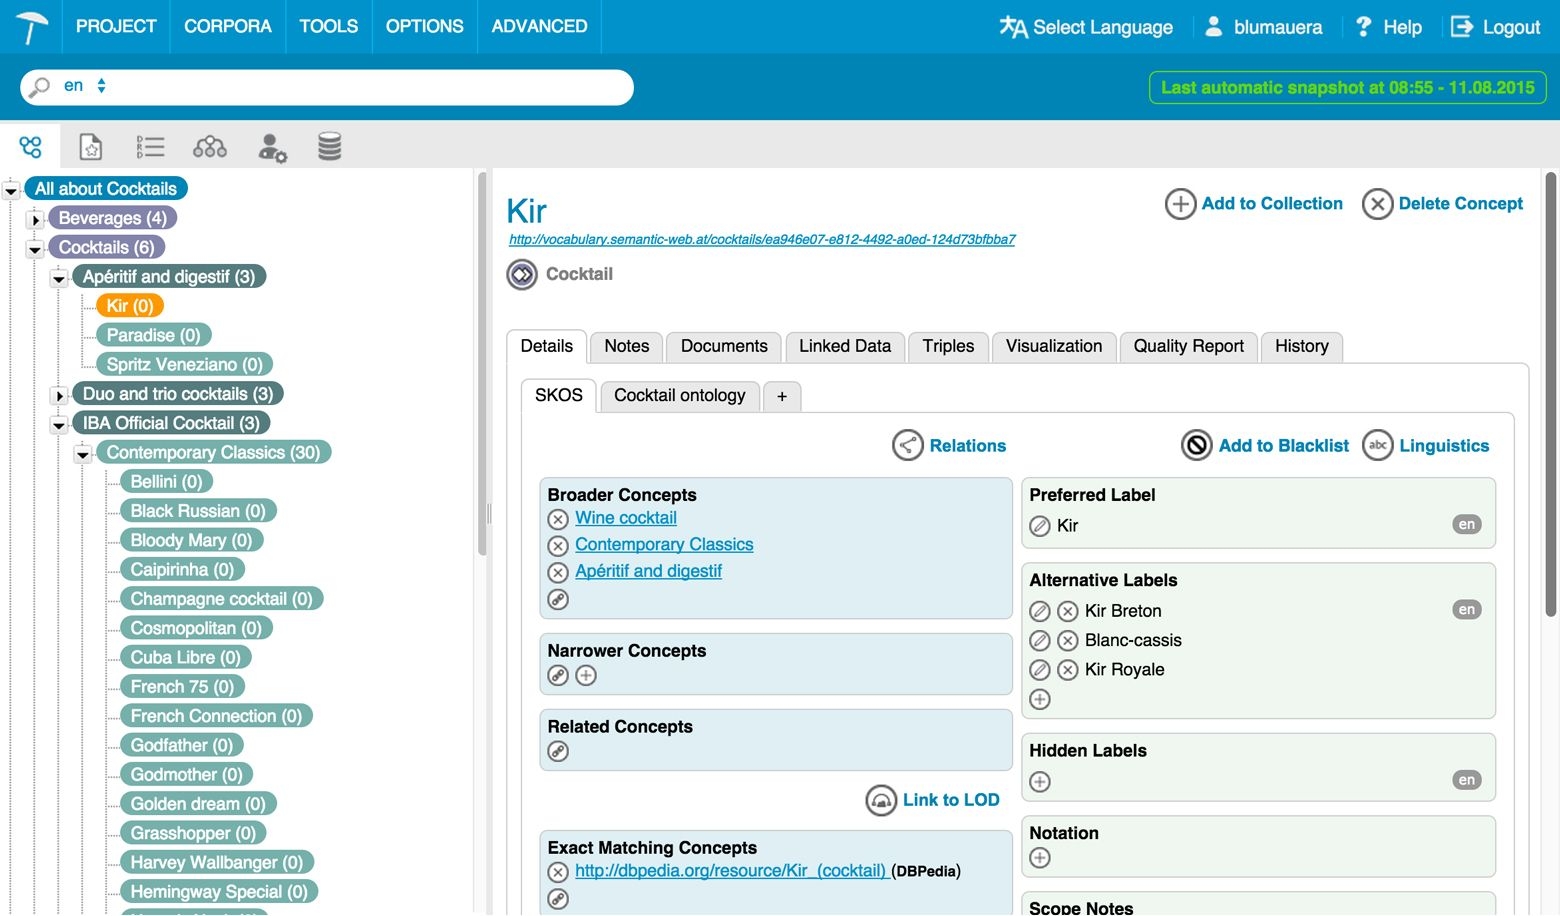 PoolParty Thesaurus manager interface image